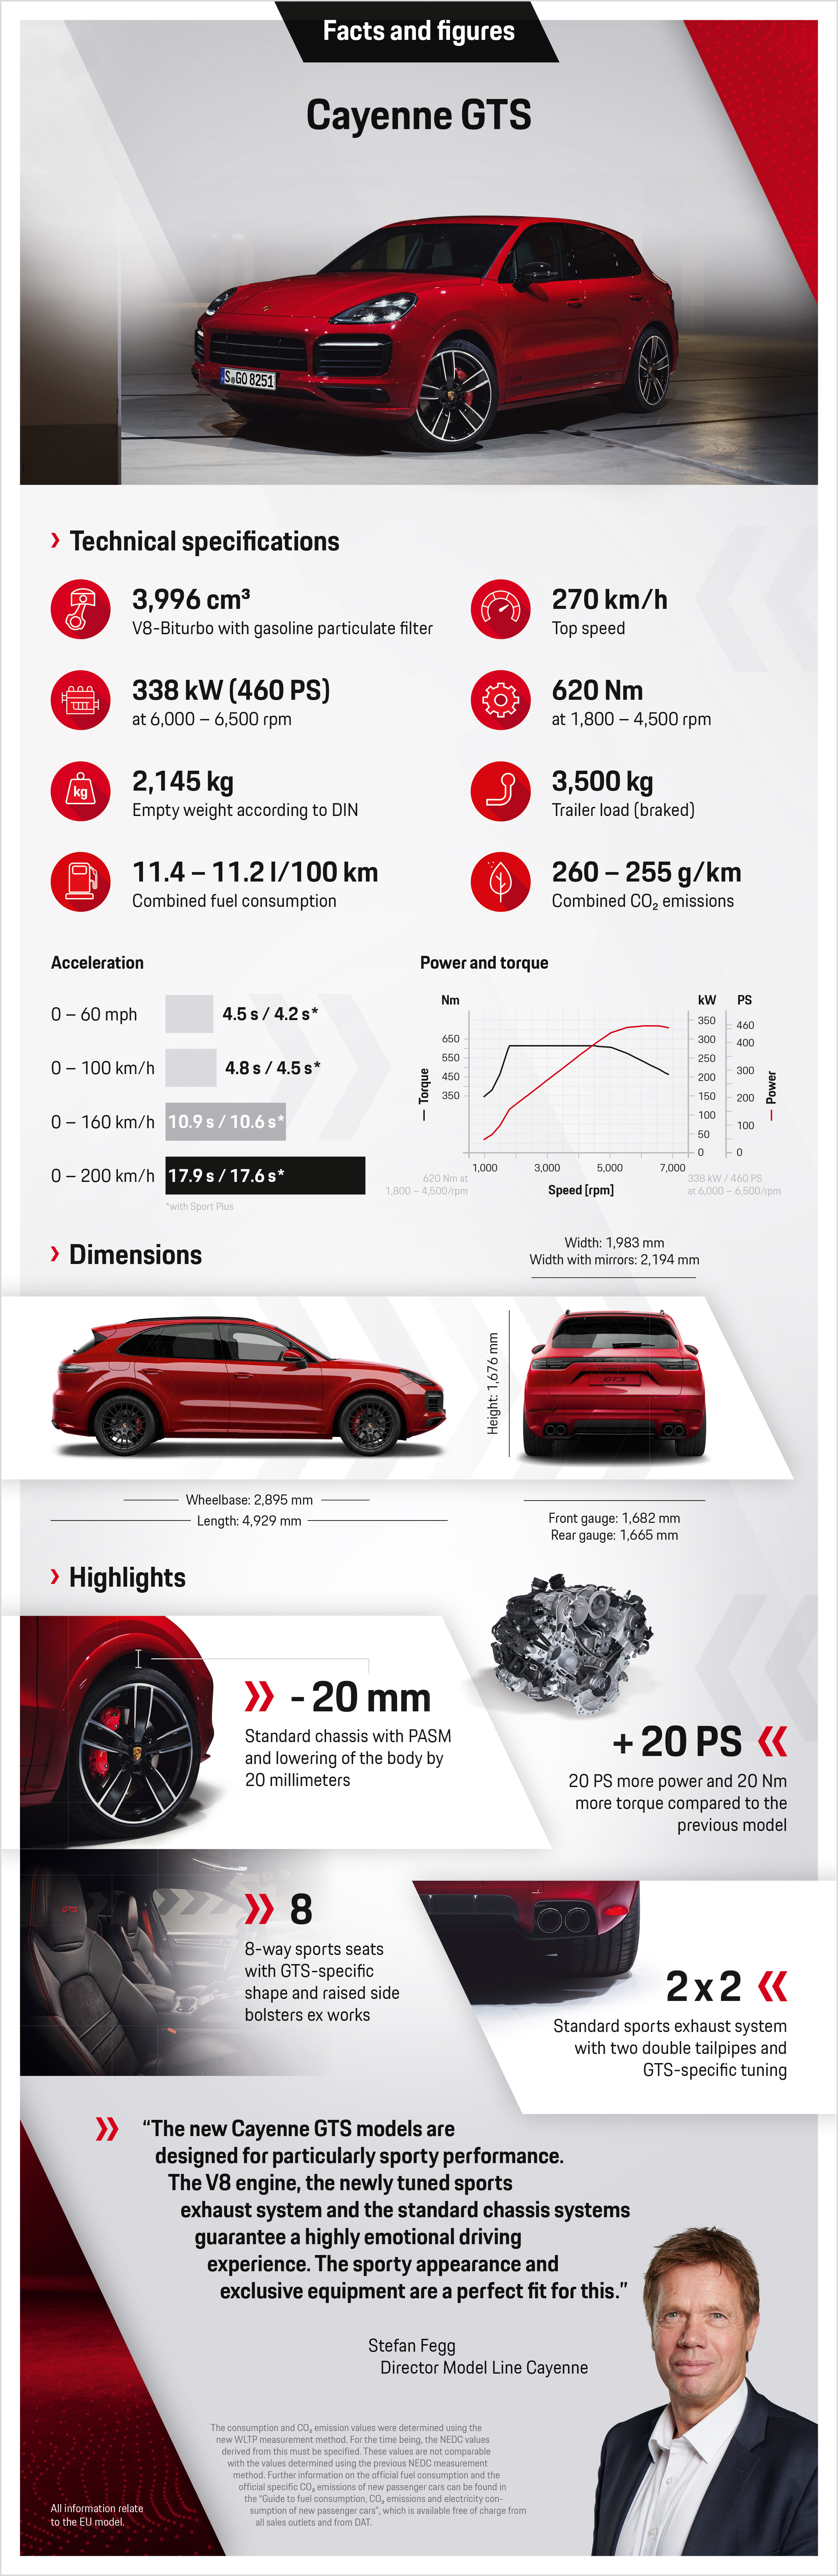 SUV duo with sporty set-up: the new Cayenne GTS models - Image 1